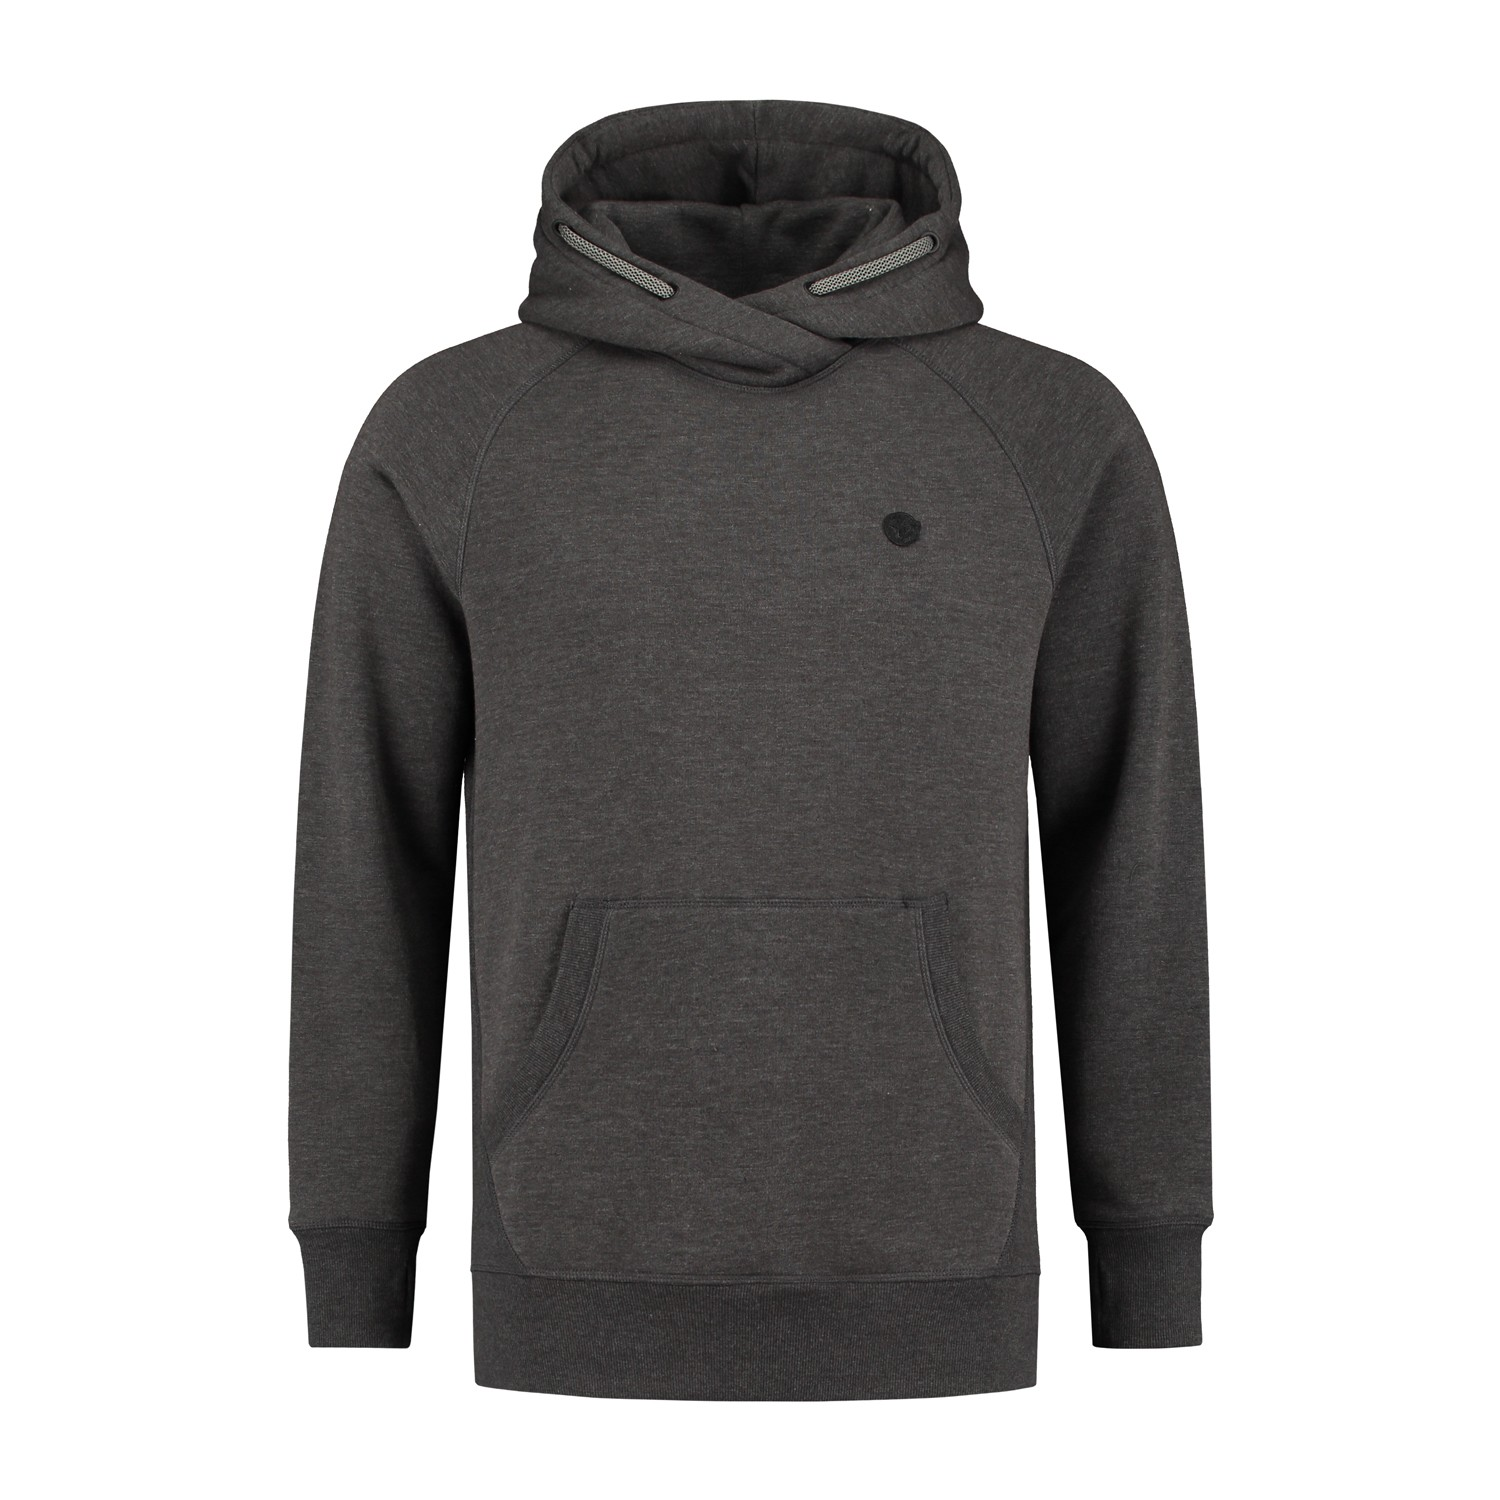 Korda Limited Edition Charcoal Hoodie